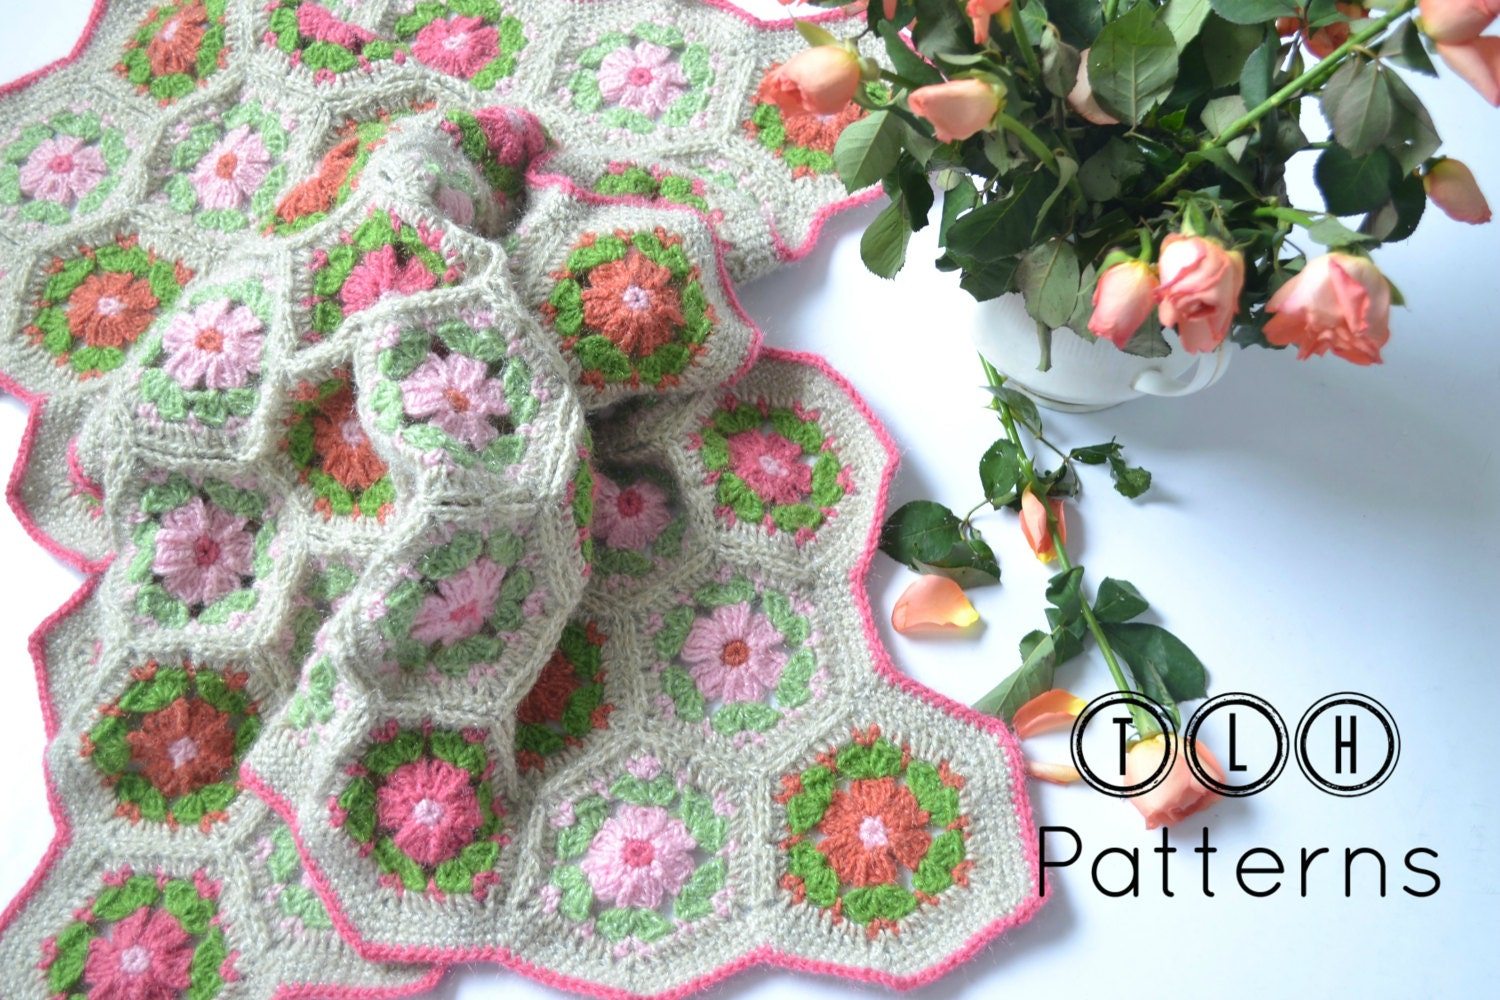 Crochet baby blanket pattern crochet blanket pattern crib this is a digital file bankloansurffo Image collections